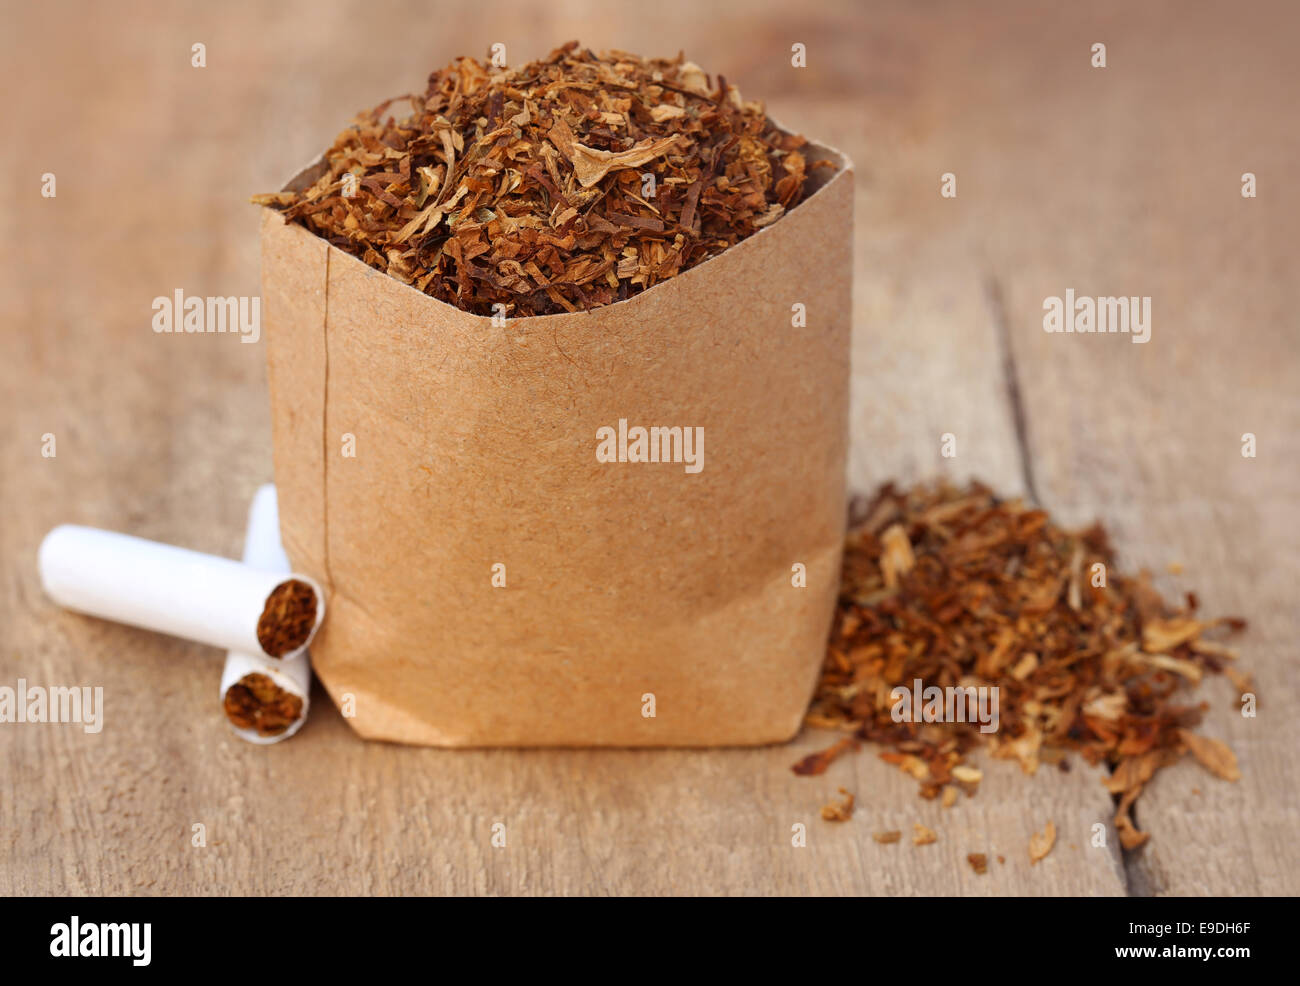 Dried tobacco leaves with cigarette on wooden surface - Stock Image